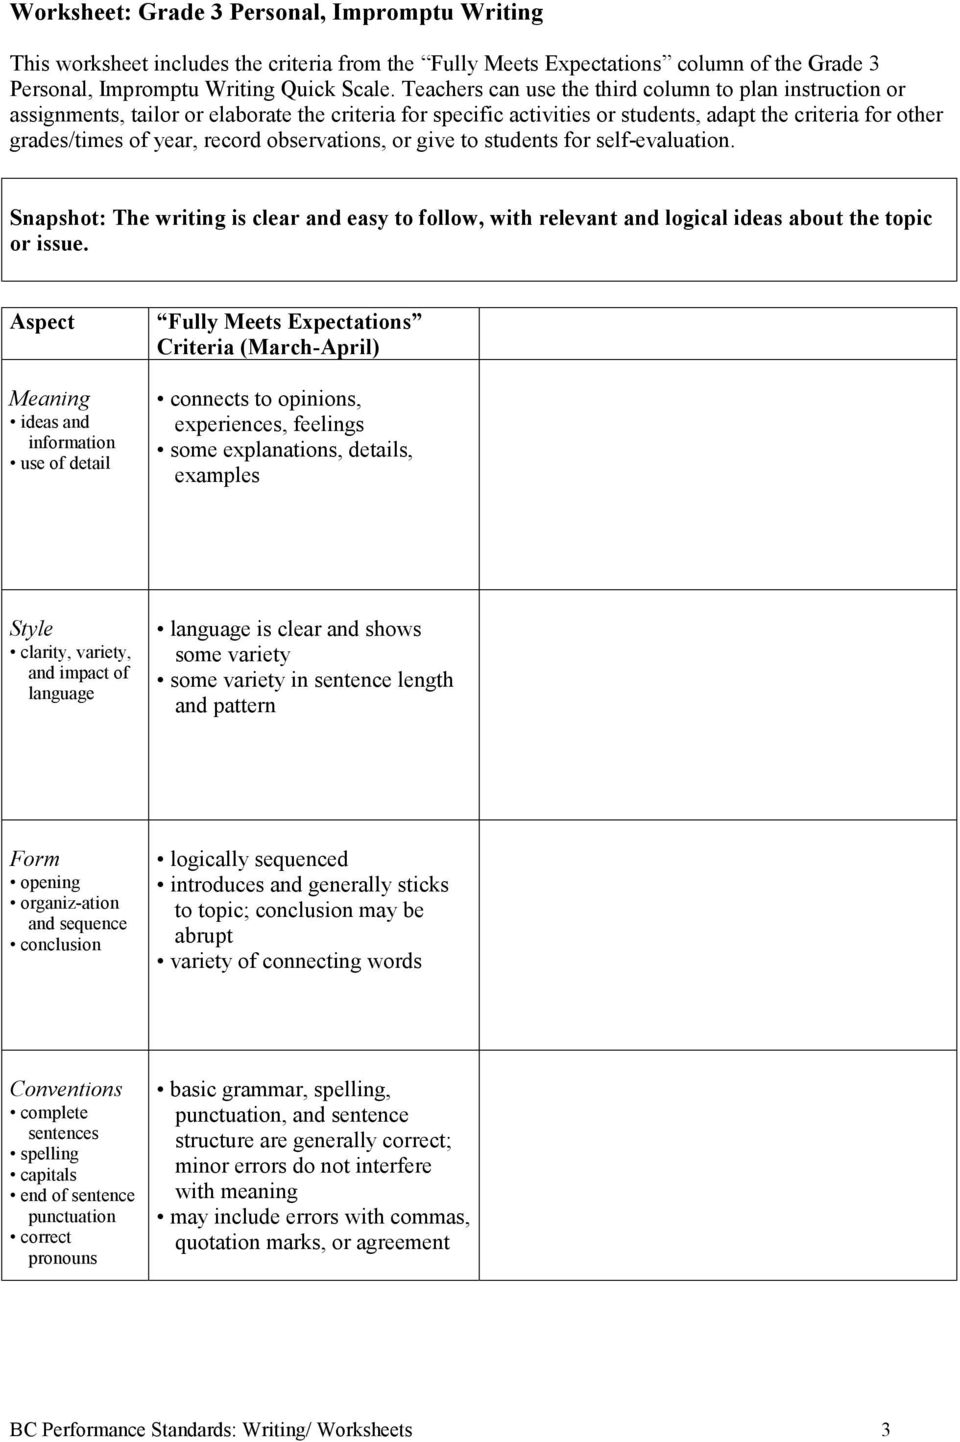 observations, or give to students for self-evaluation. Snapshot: The writing is clear and easy to follow, with relevant and logical ideas about the topic or issue.